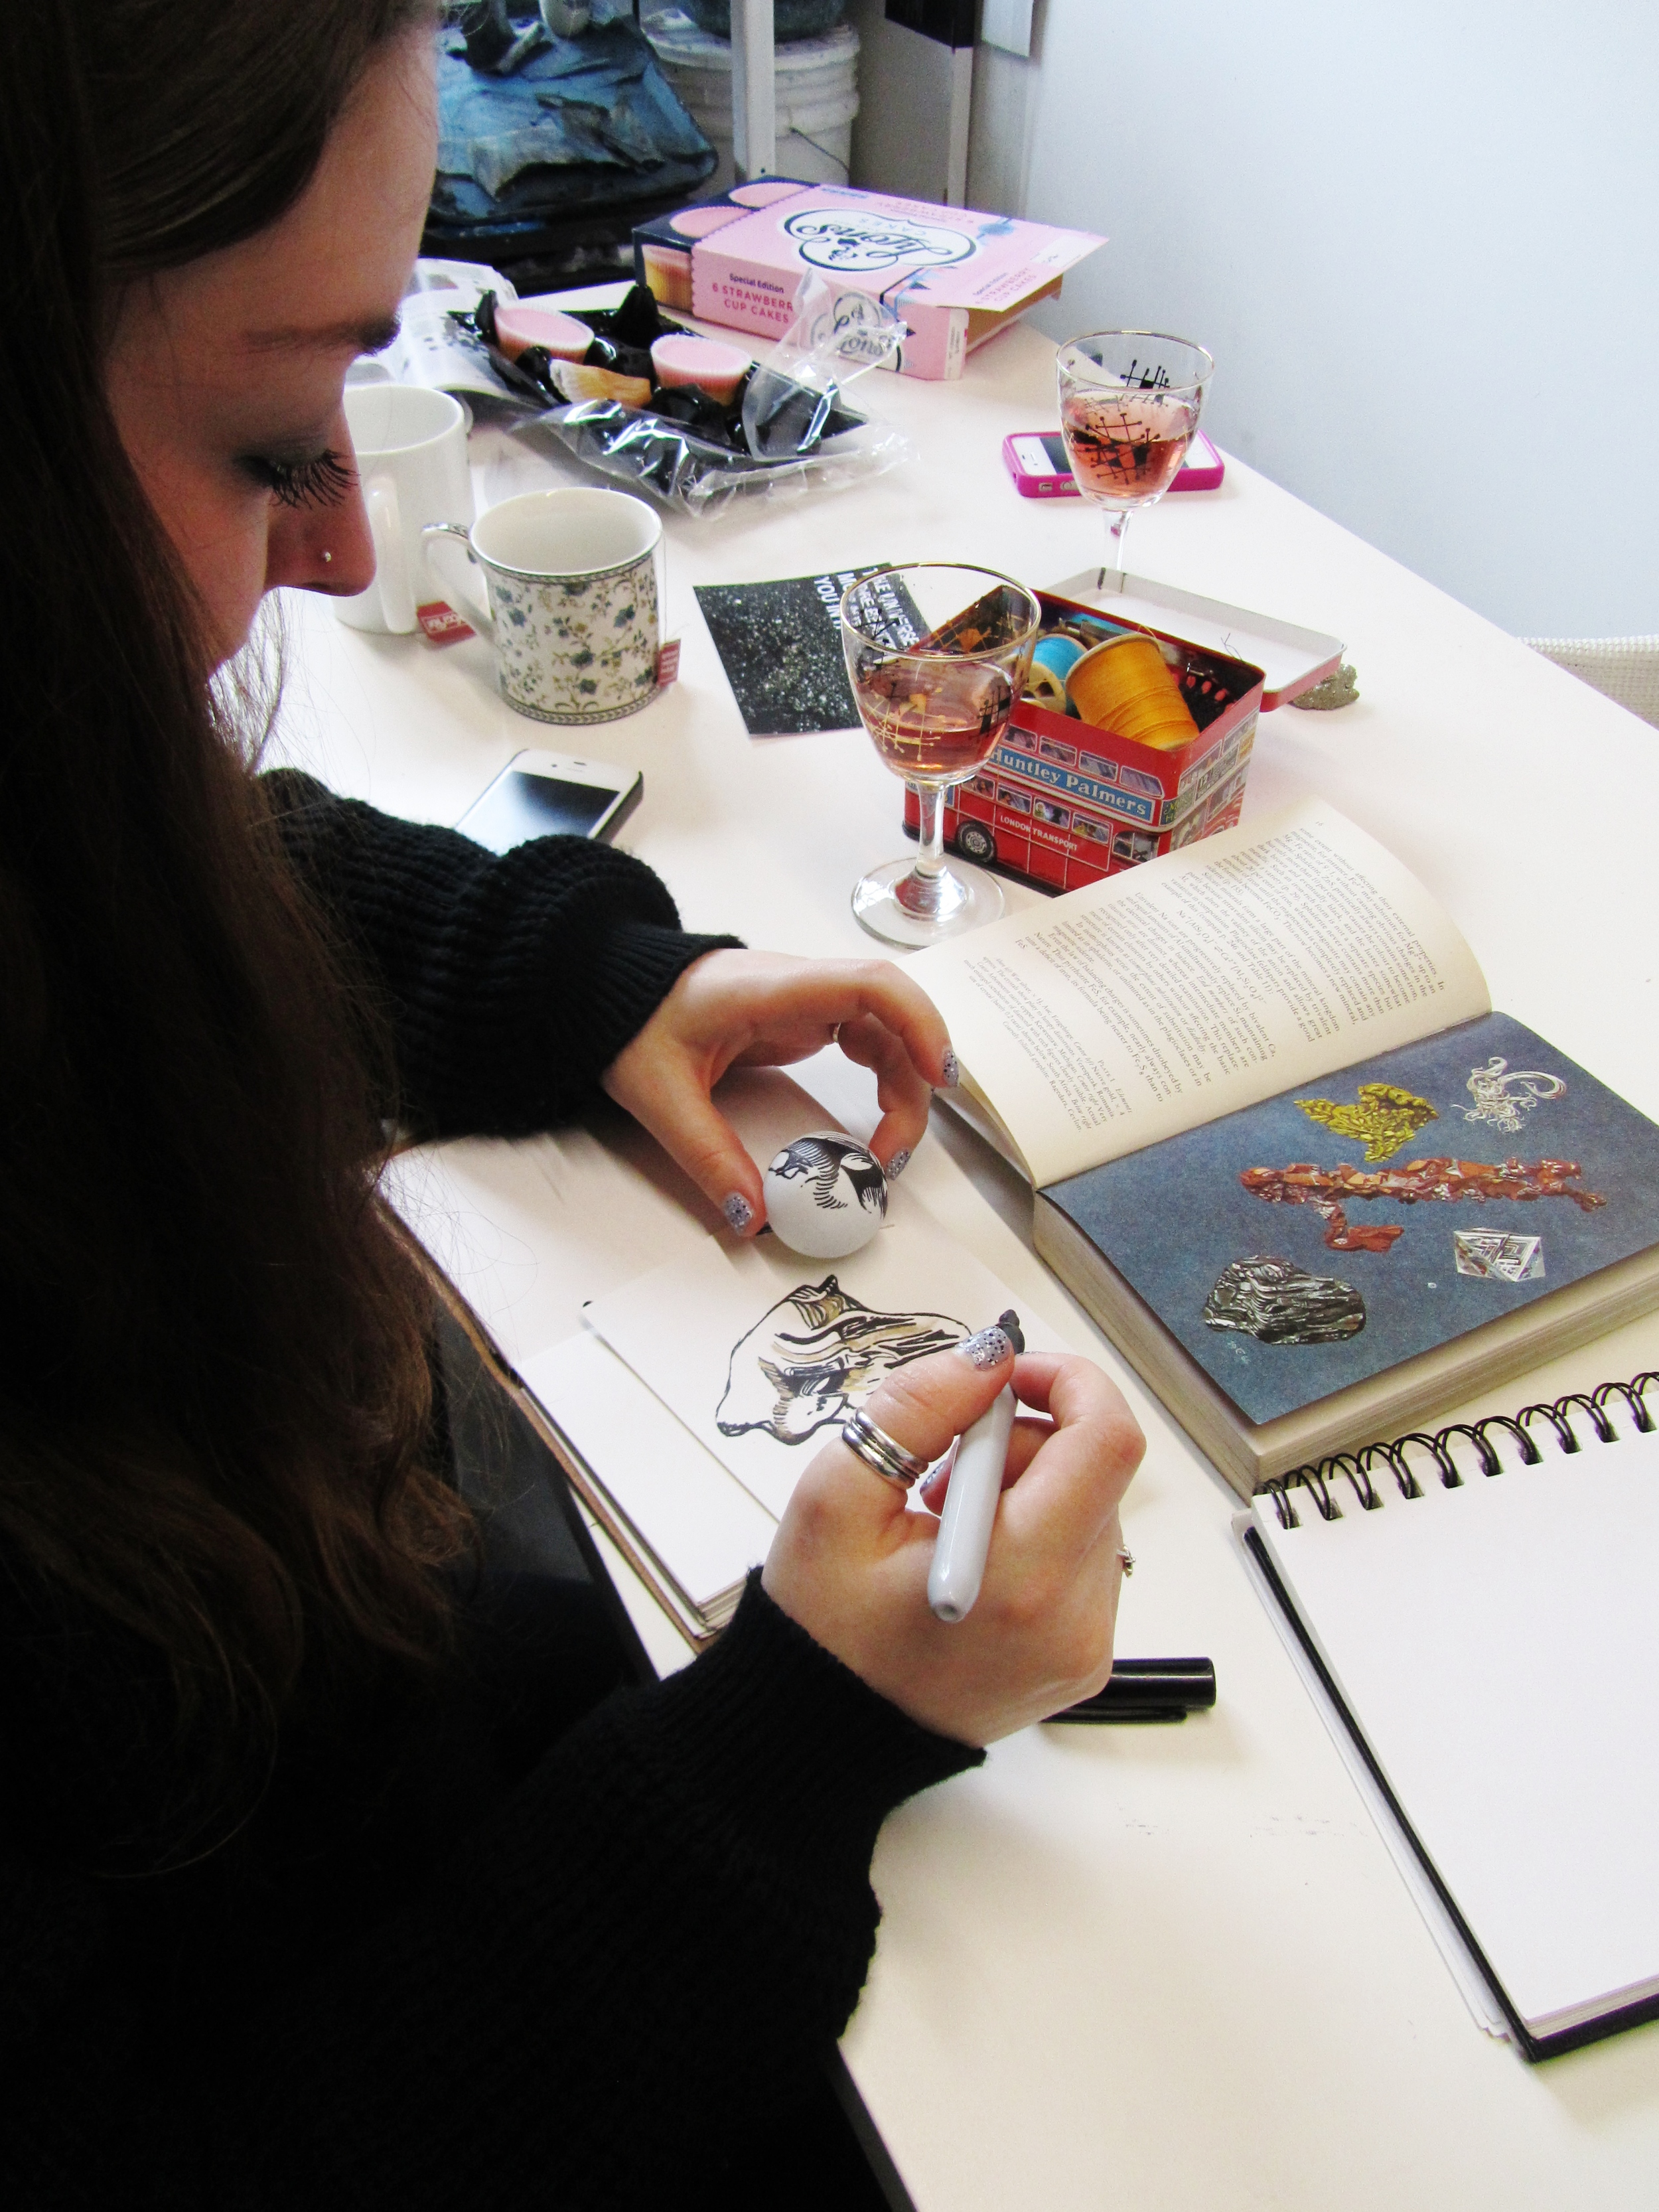 Here's Natty drawing her lovely design